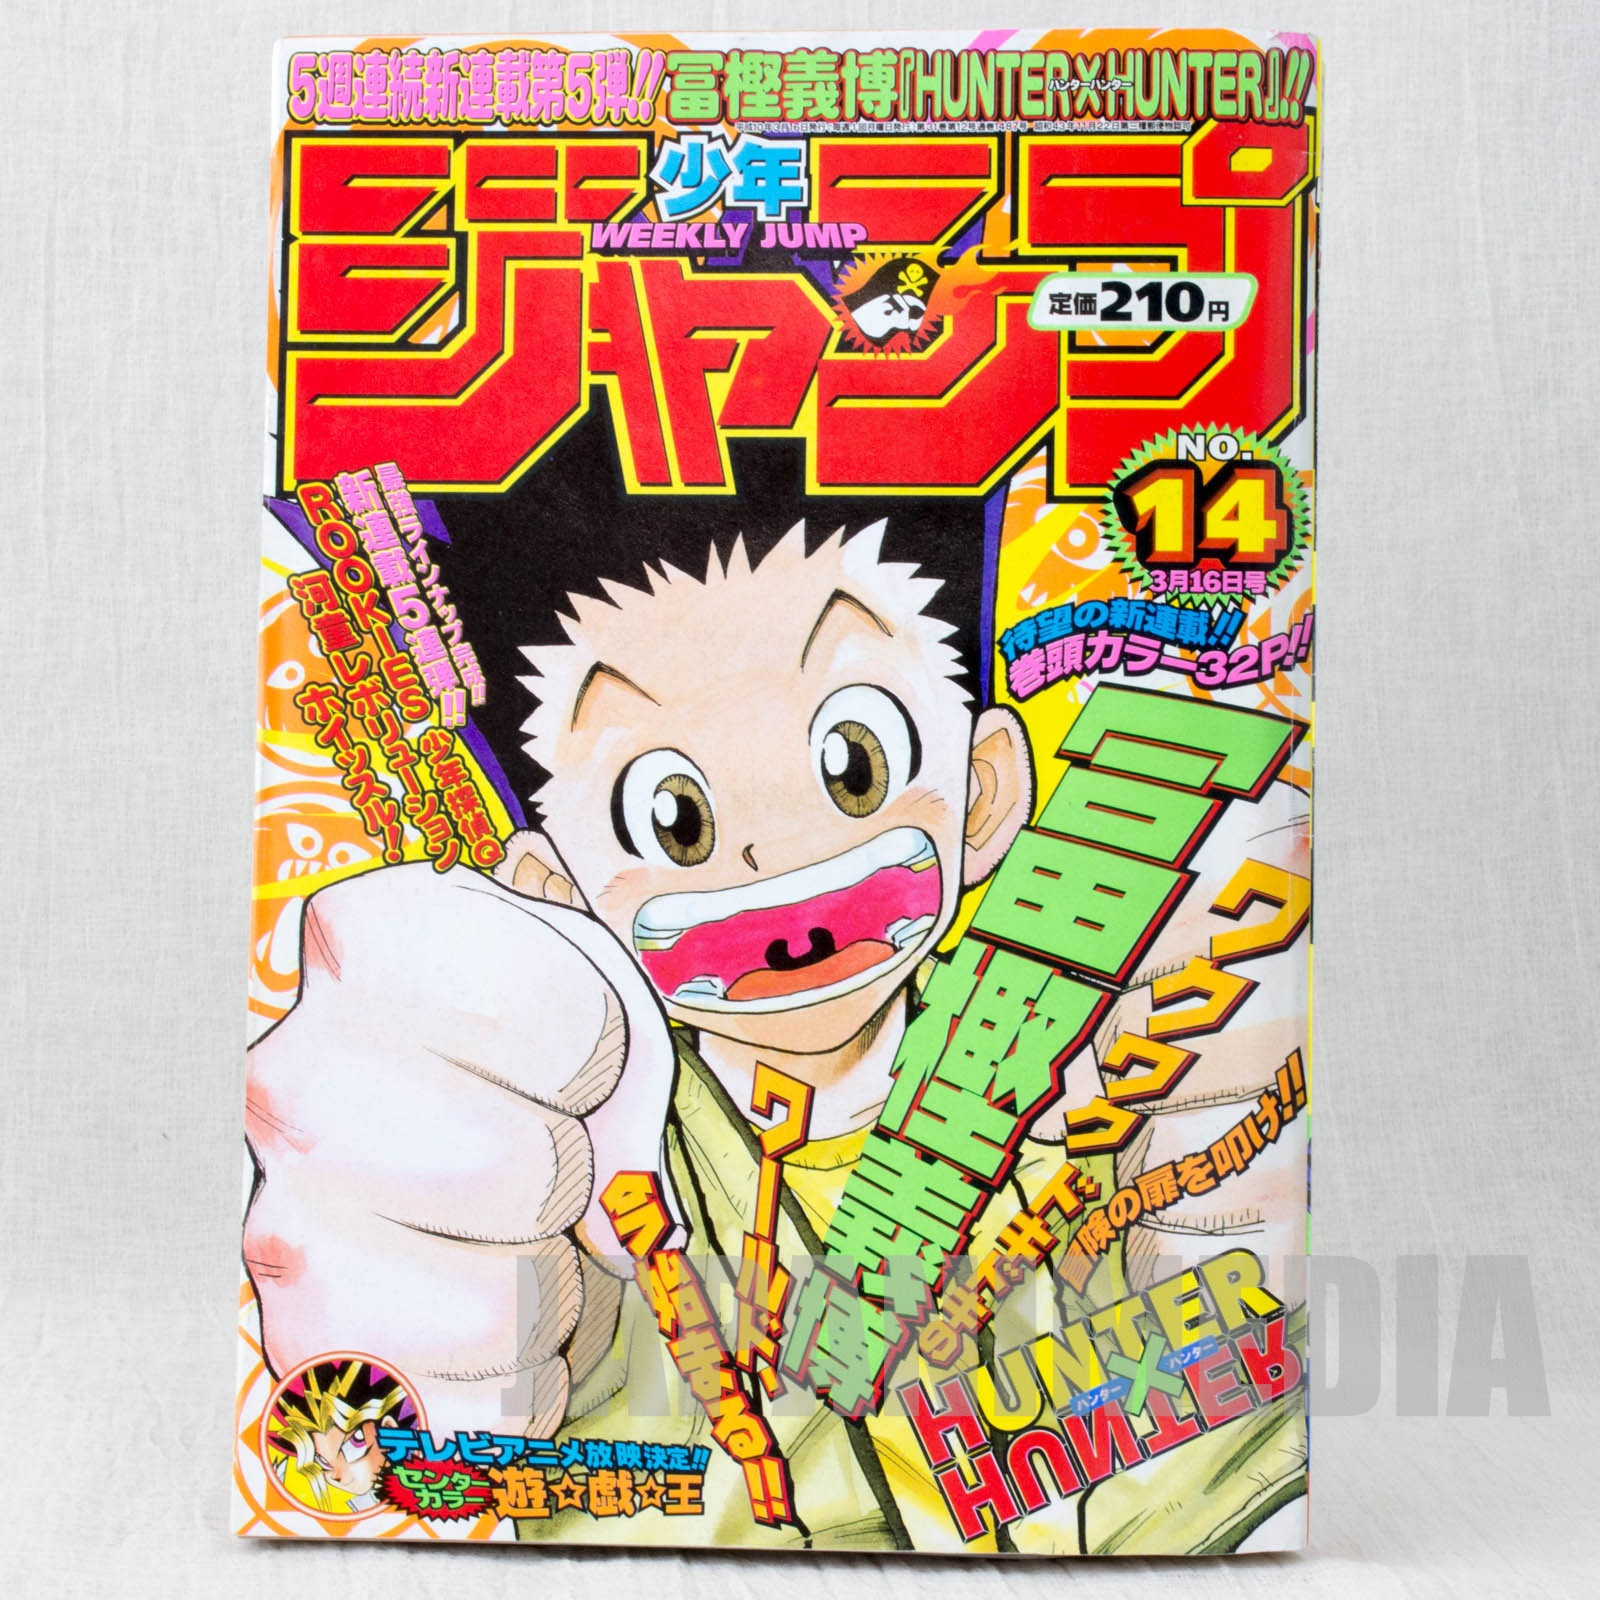 RARE!! Weekly Shonen JUMP Vol.14 1998 Hunter x Hunter / Japanese Magazine JAPAN MANGA